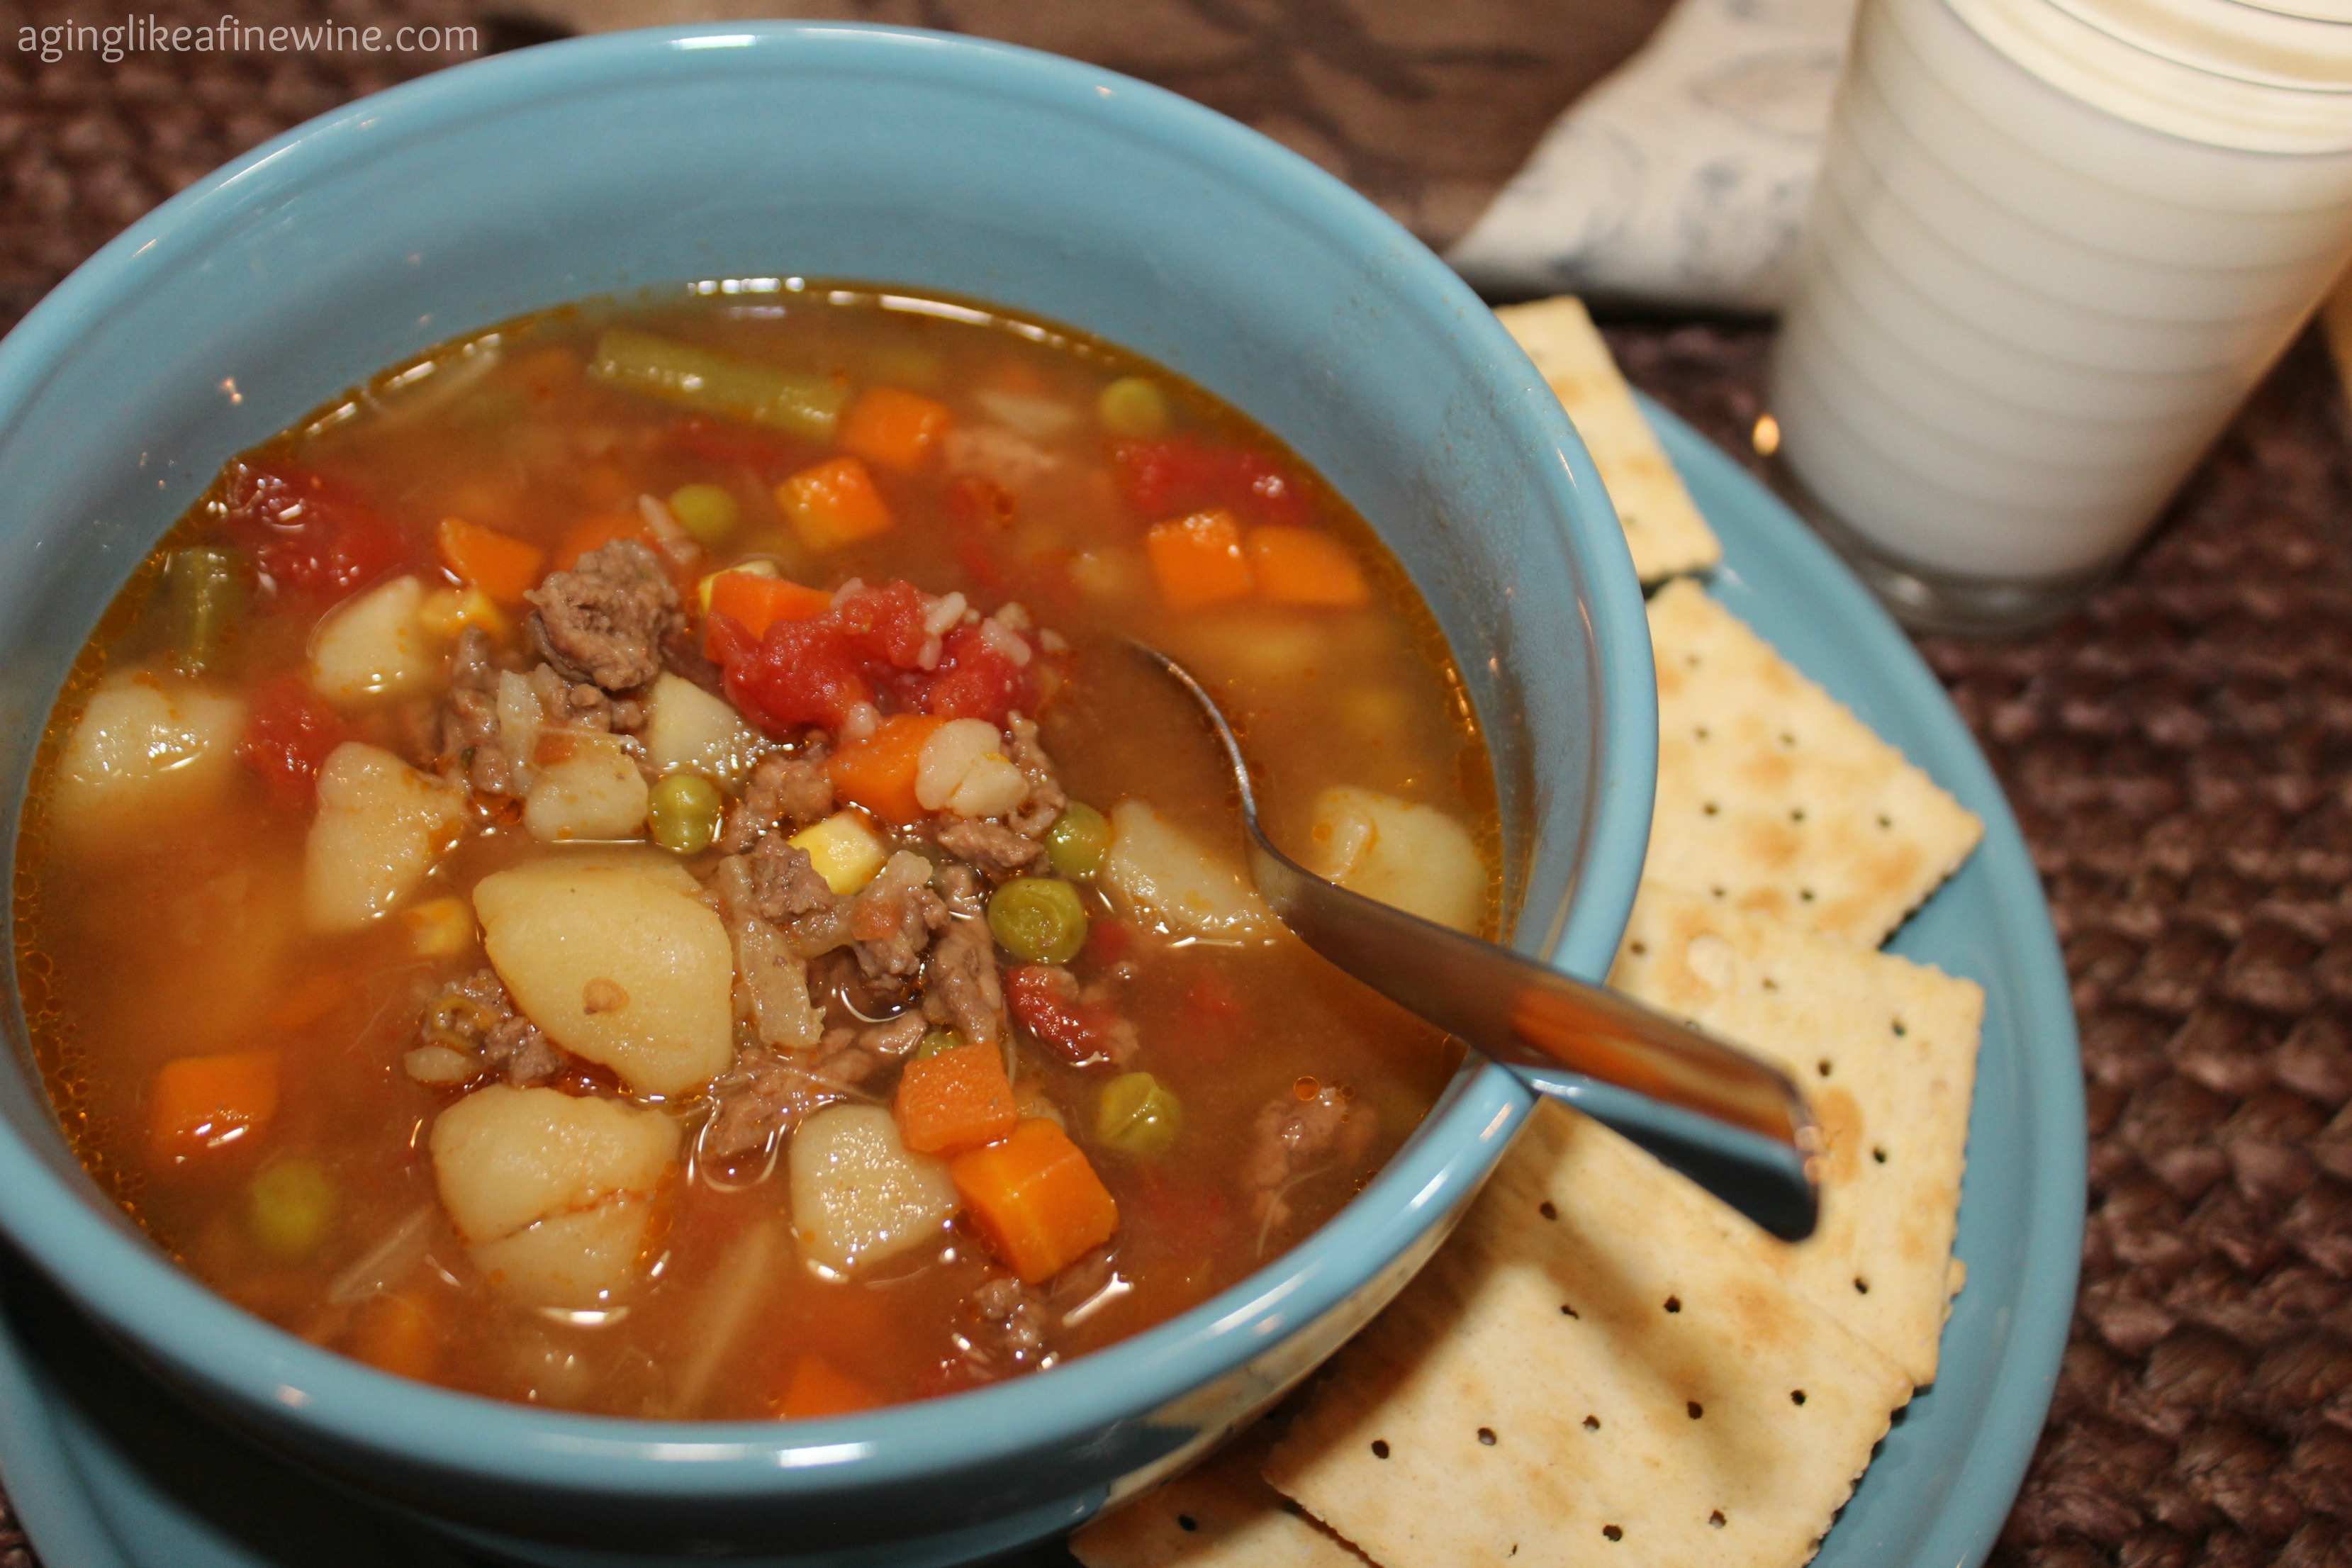 Homemade Vegetable Soup, warm comfort food!      (by Aging Like a Fine Wine)